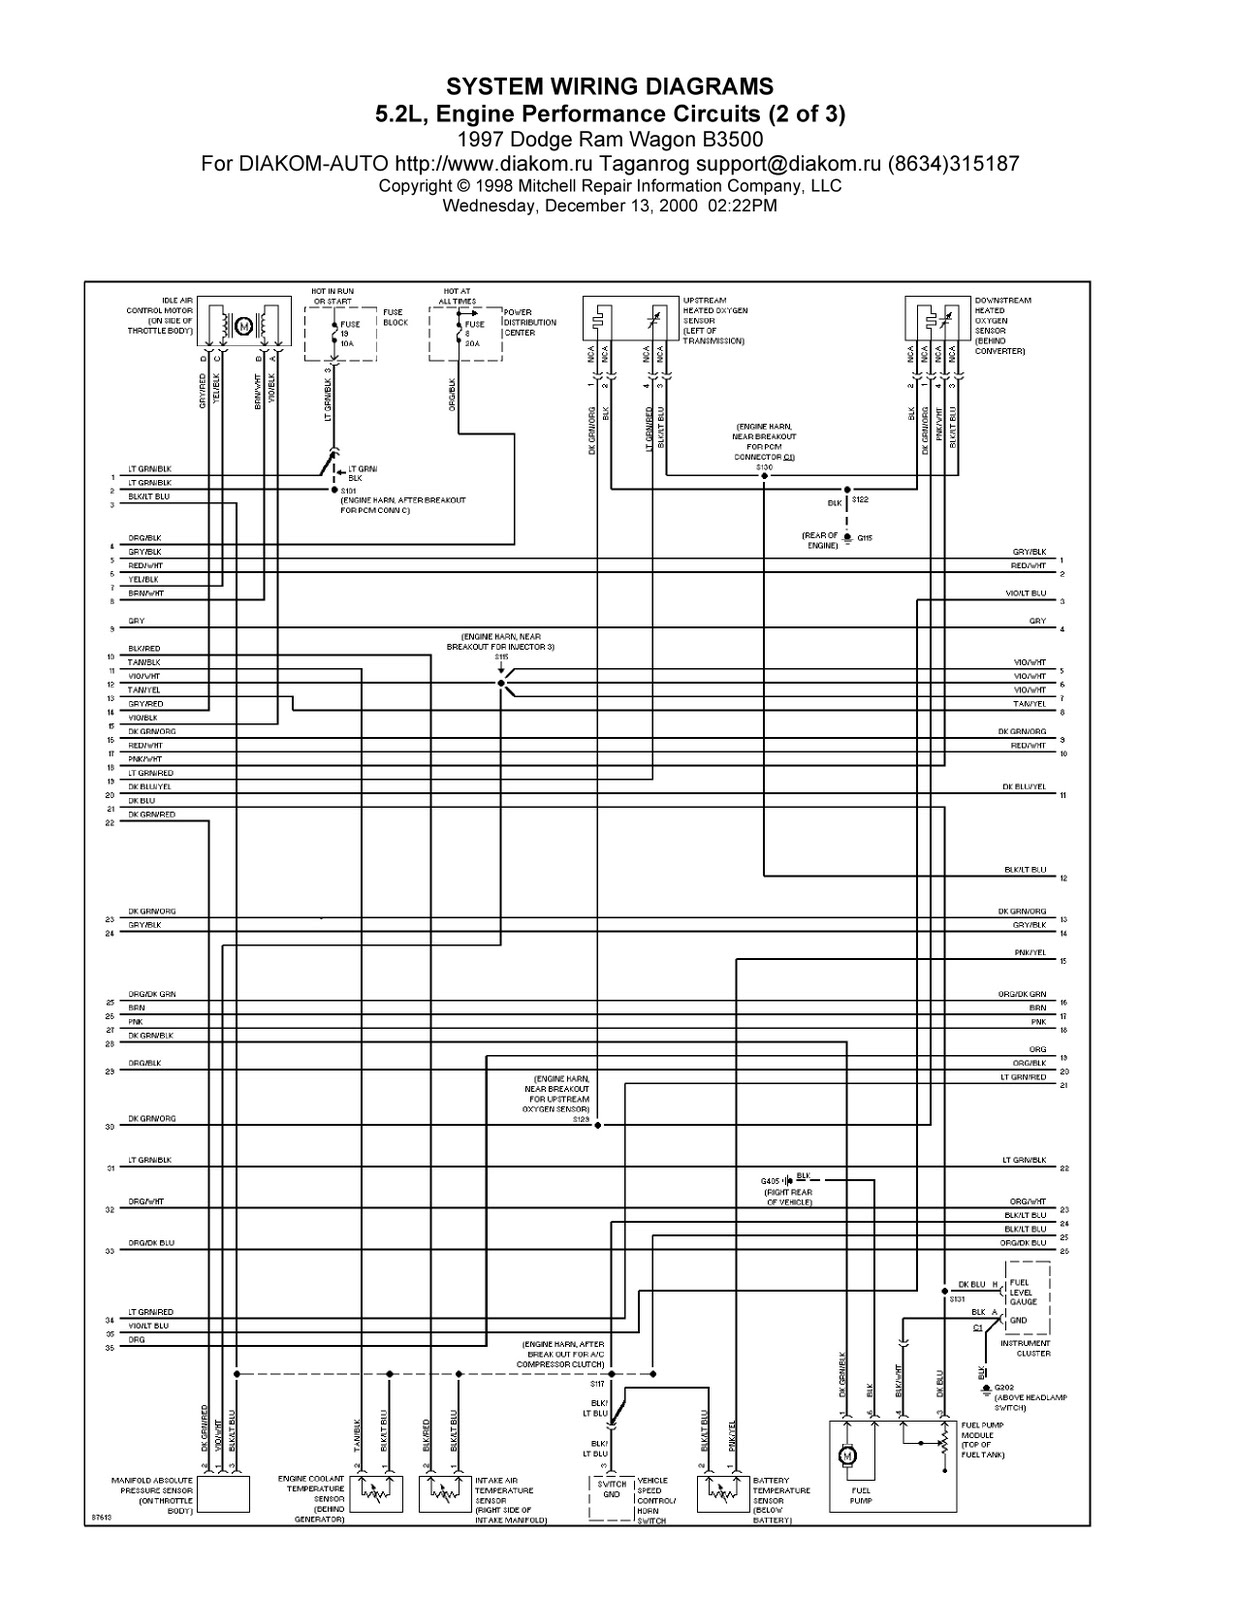 dodge power wagon engine harness diagram wiring library1997 dodge ram wagon b3500 system wiring diagram 5 [ 1236 x 1600 Pixel ]